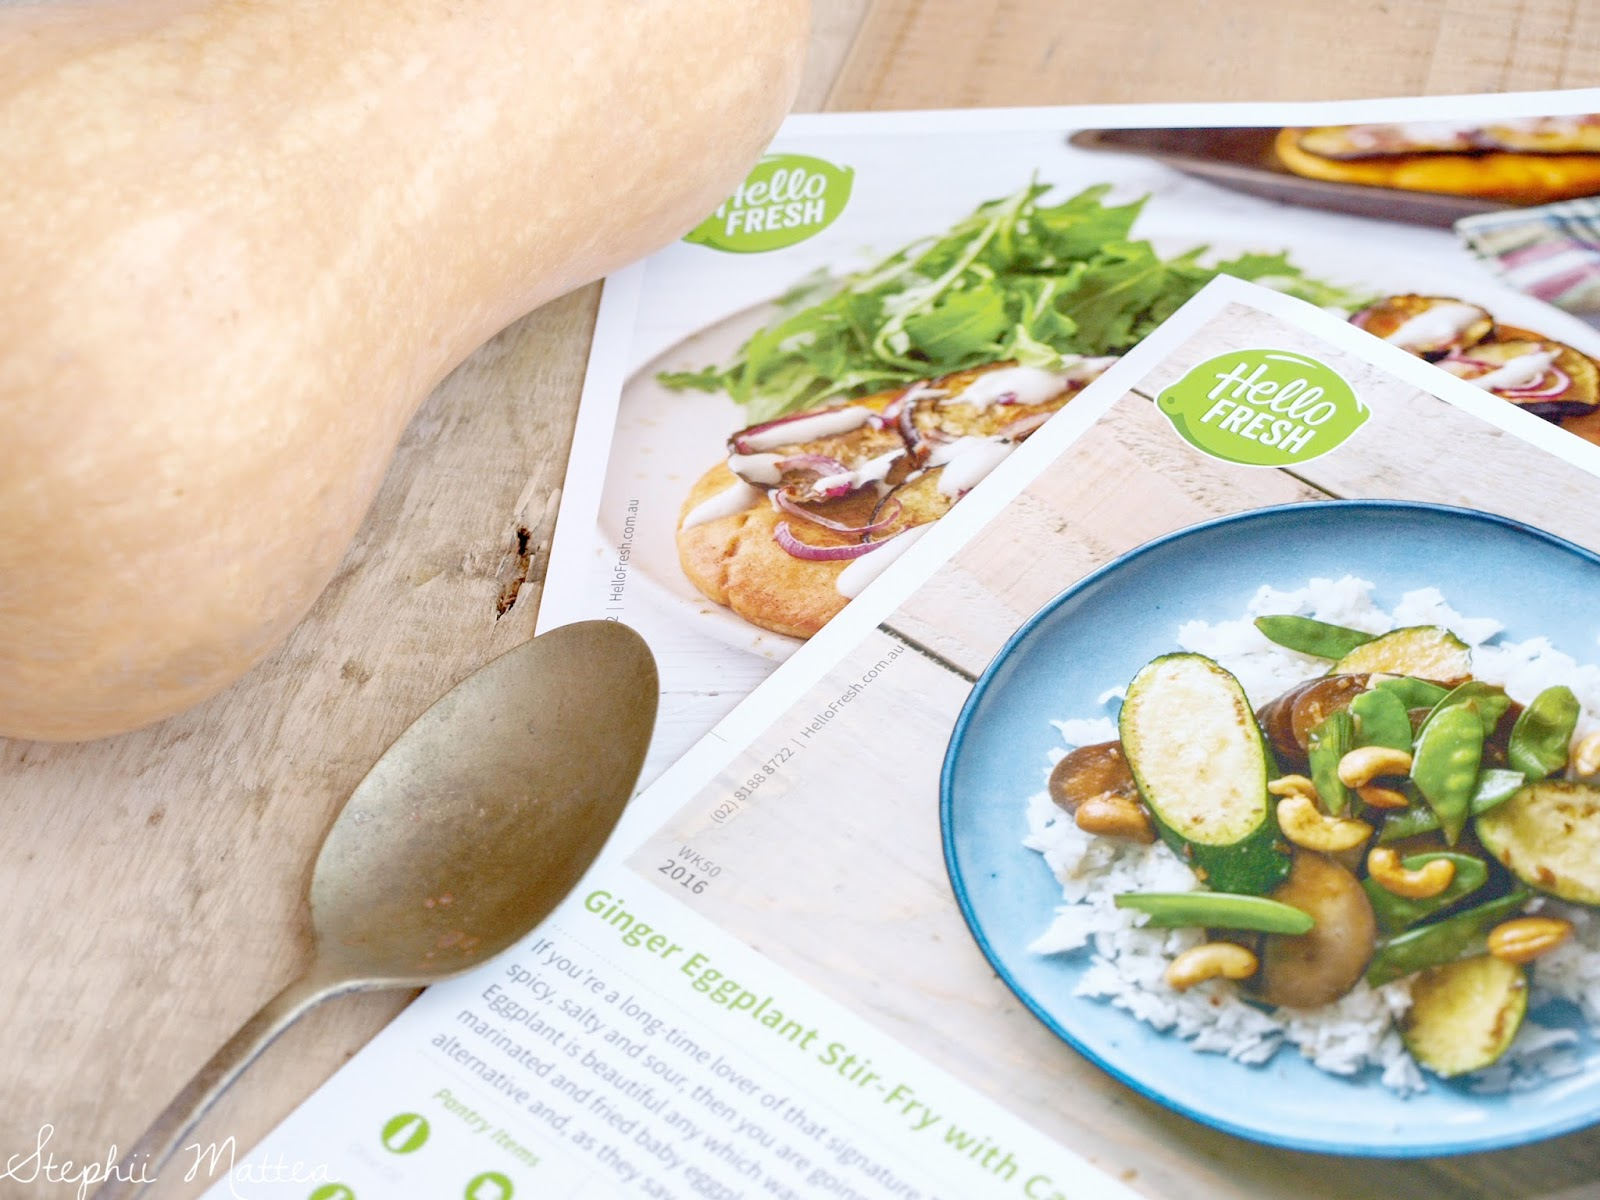 Meal Kit Delivery Service Hellofresh Outlet Store Coupons 2020